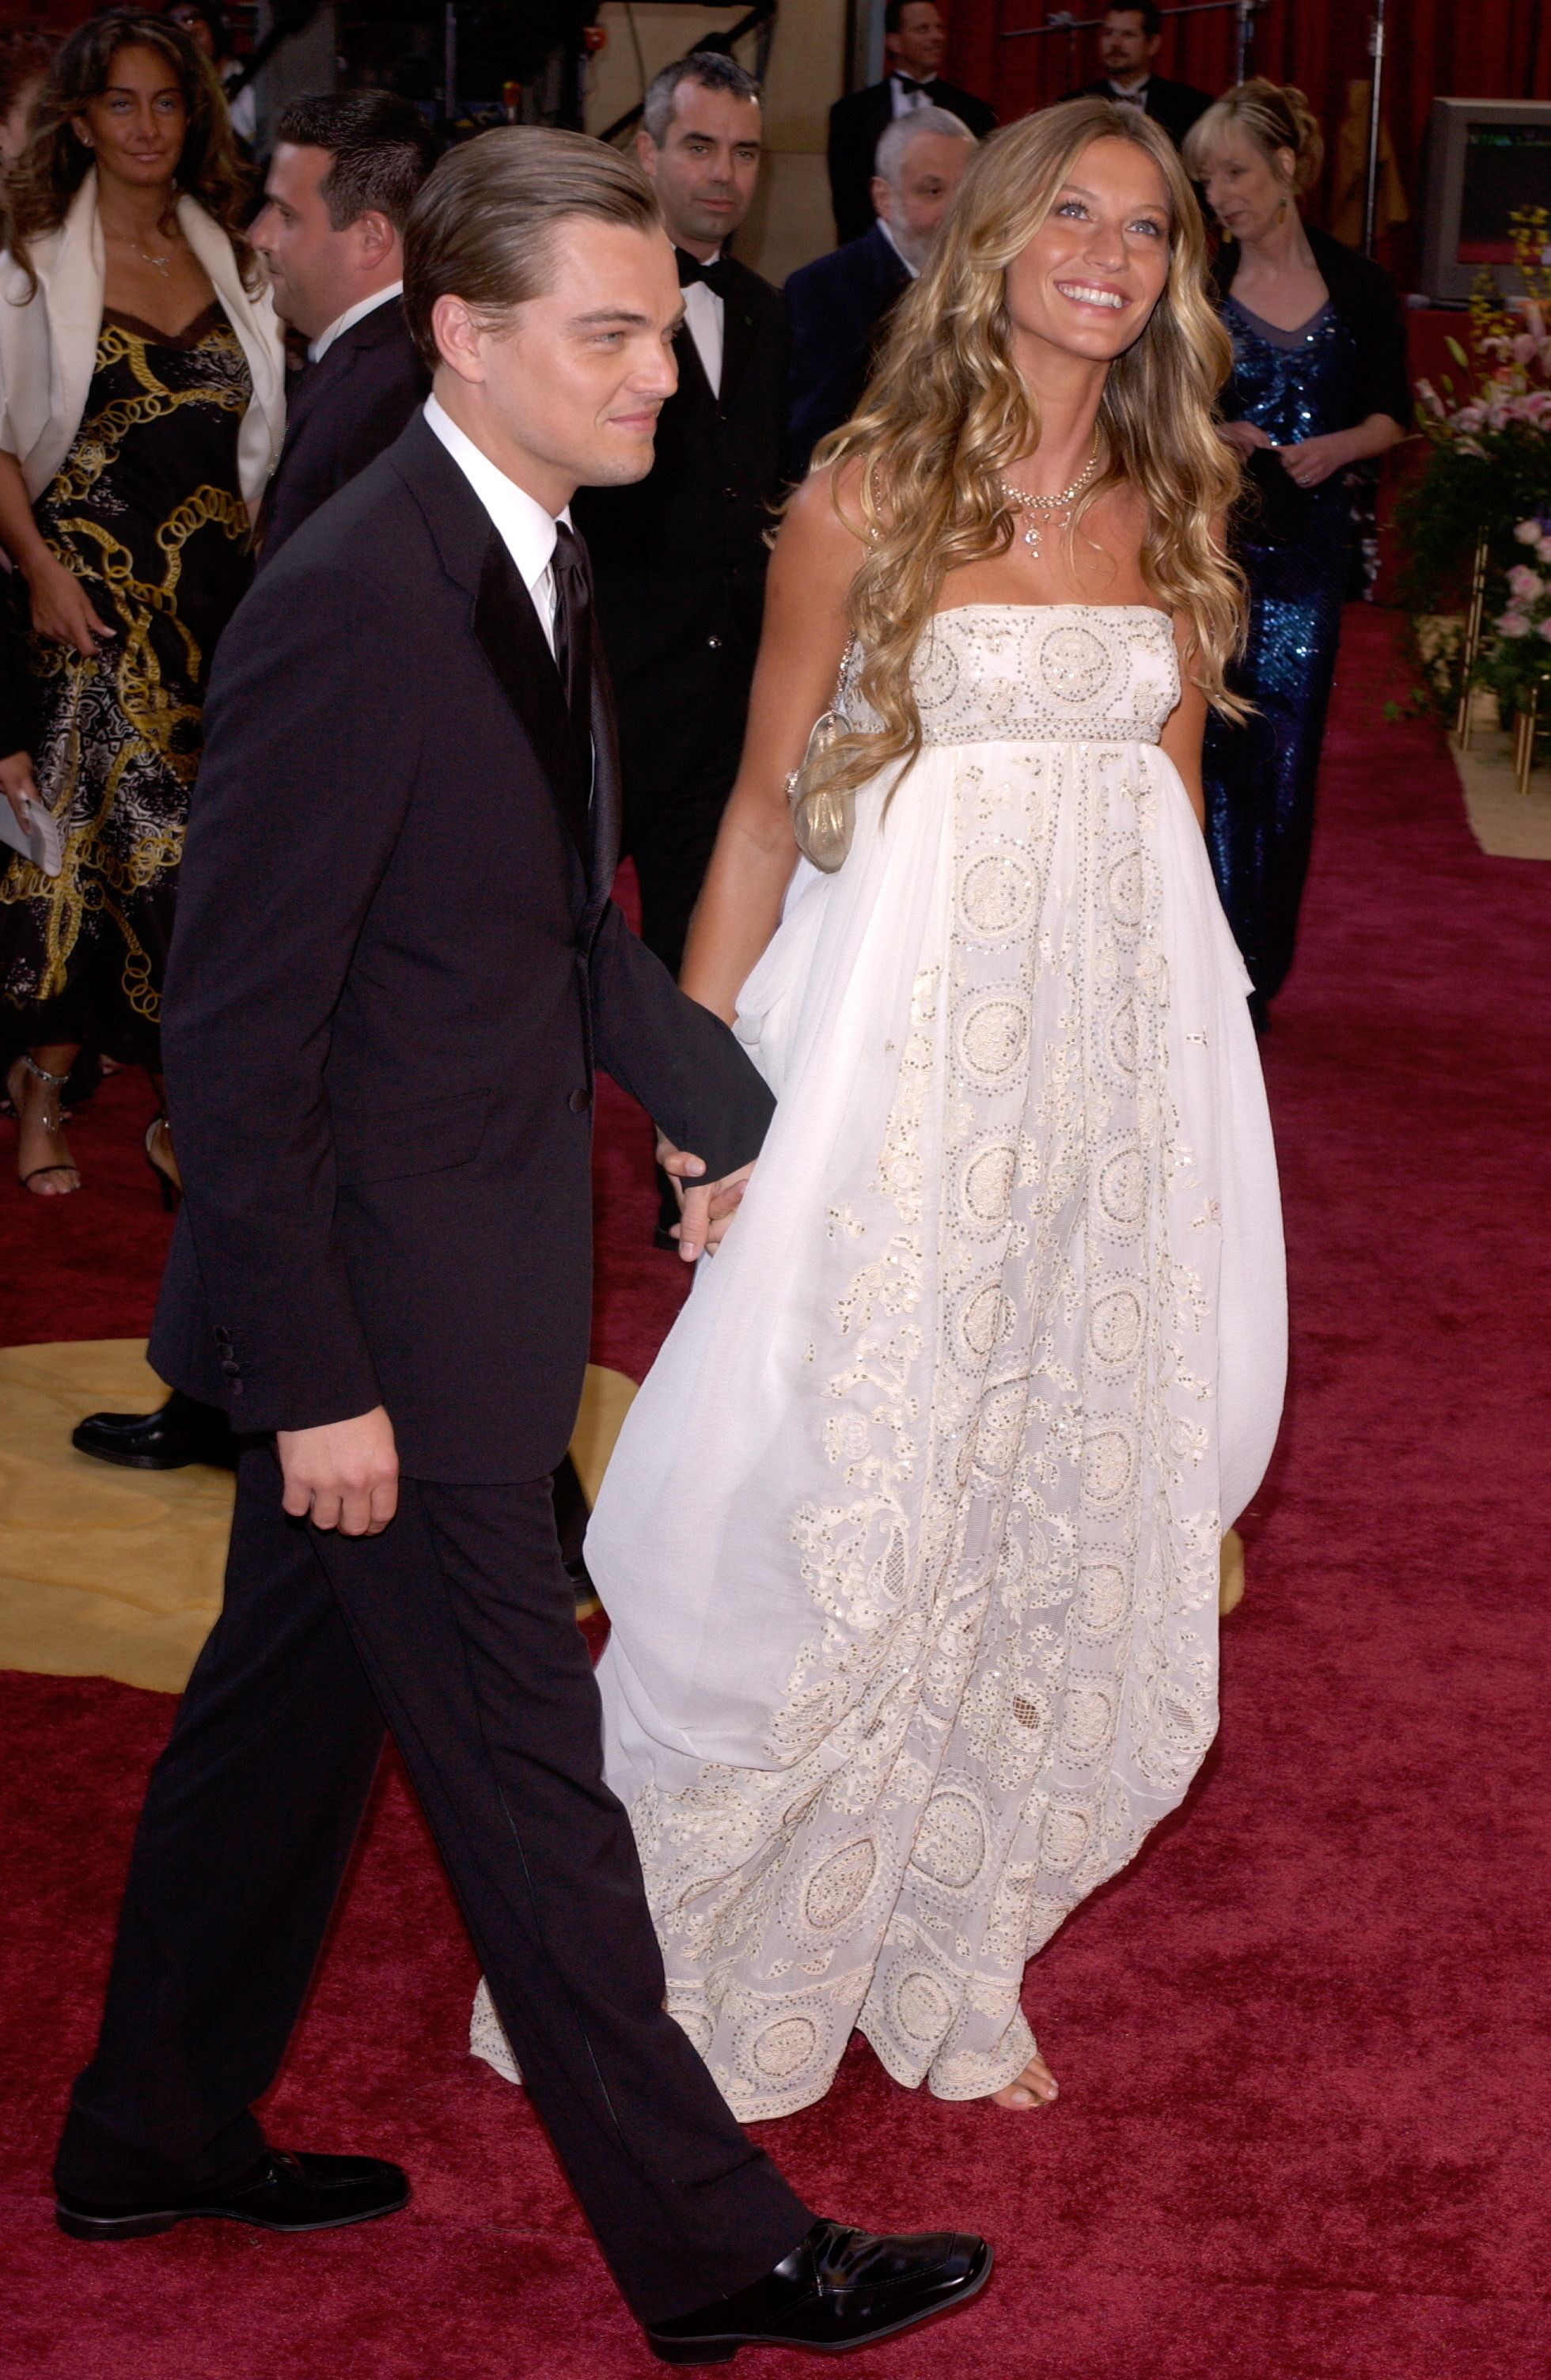 Leo and Gisele Bundchen on the red carpet